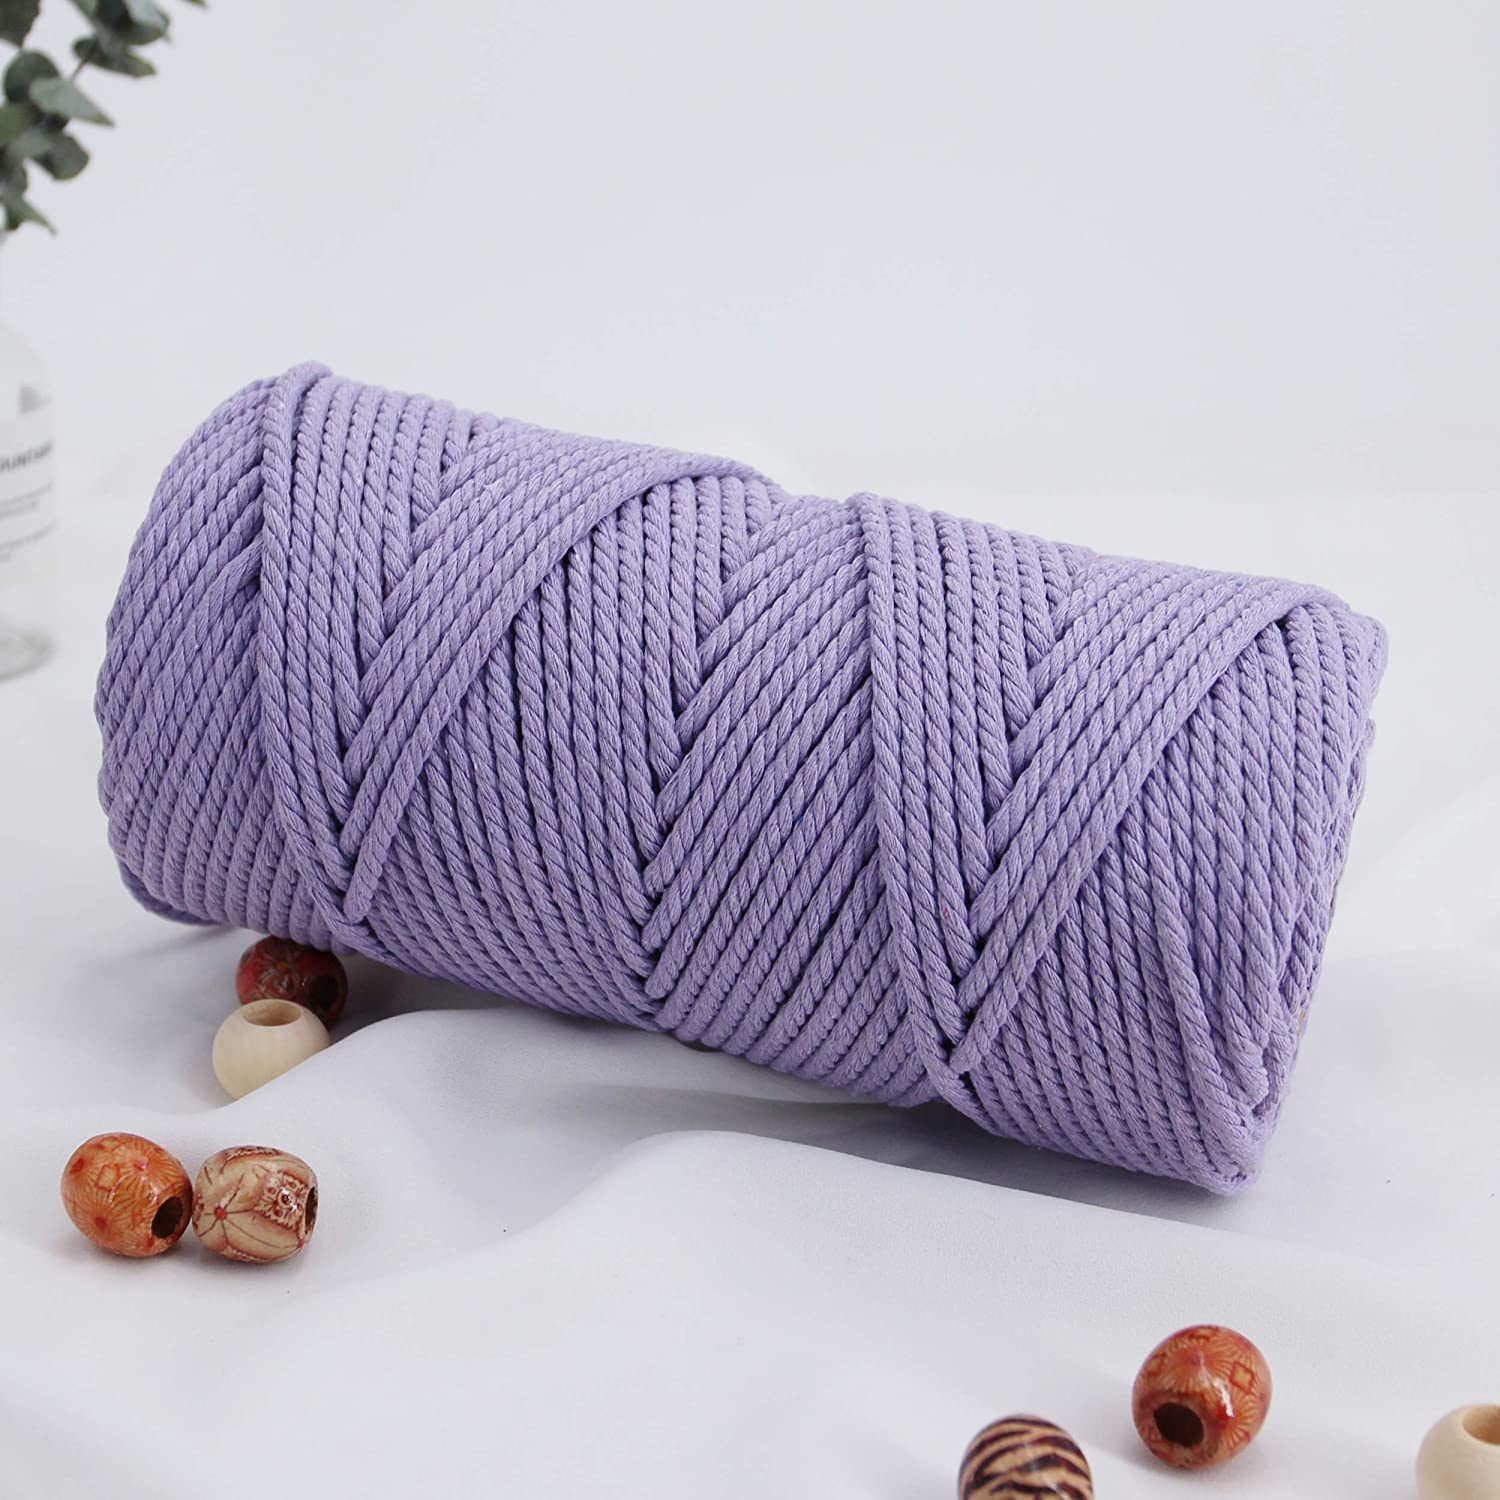 Macrame Cord 4mm 100m Cotton Rope 1 Pack Light Purple,Natural Cotton Rope for Colorful Macrame Hand Knitting, 4 Strands Twist Cotton Rope Macrame 4mm for Handmade Colored Wall Hanging Weaving Tapestry